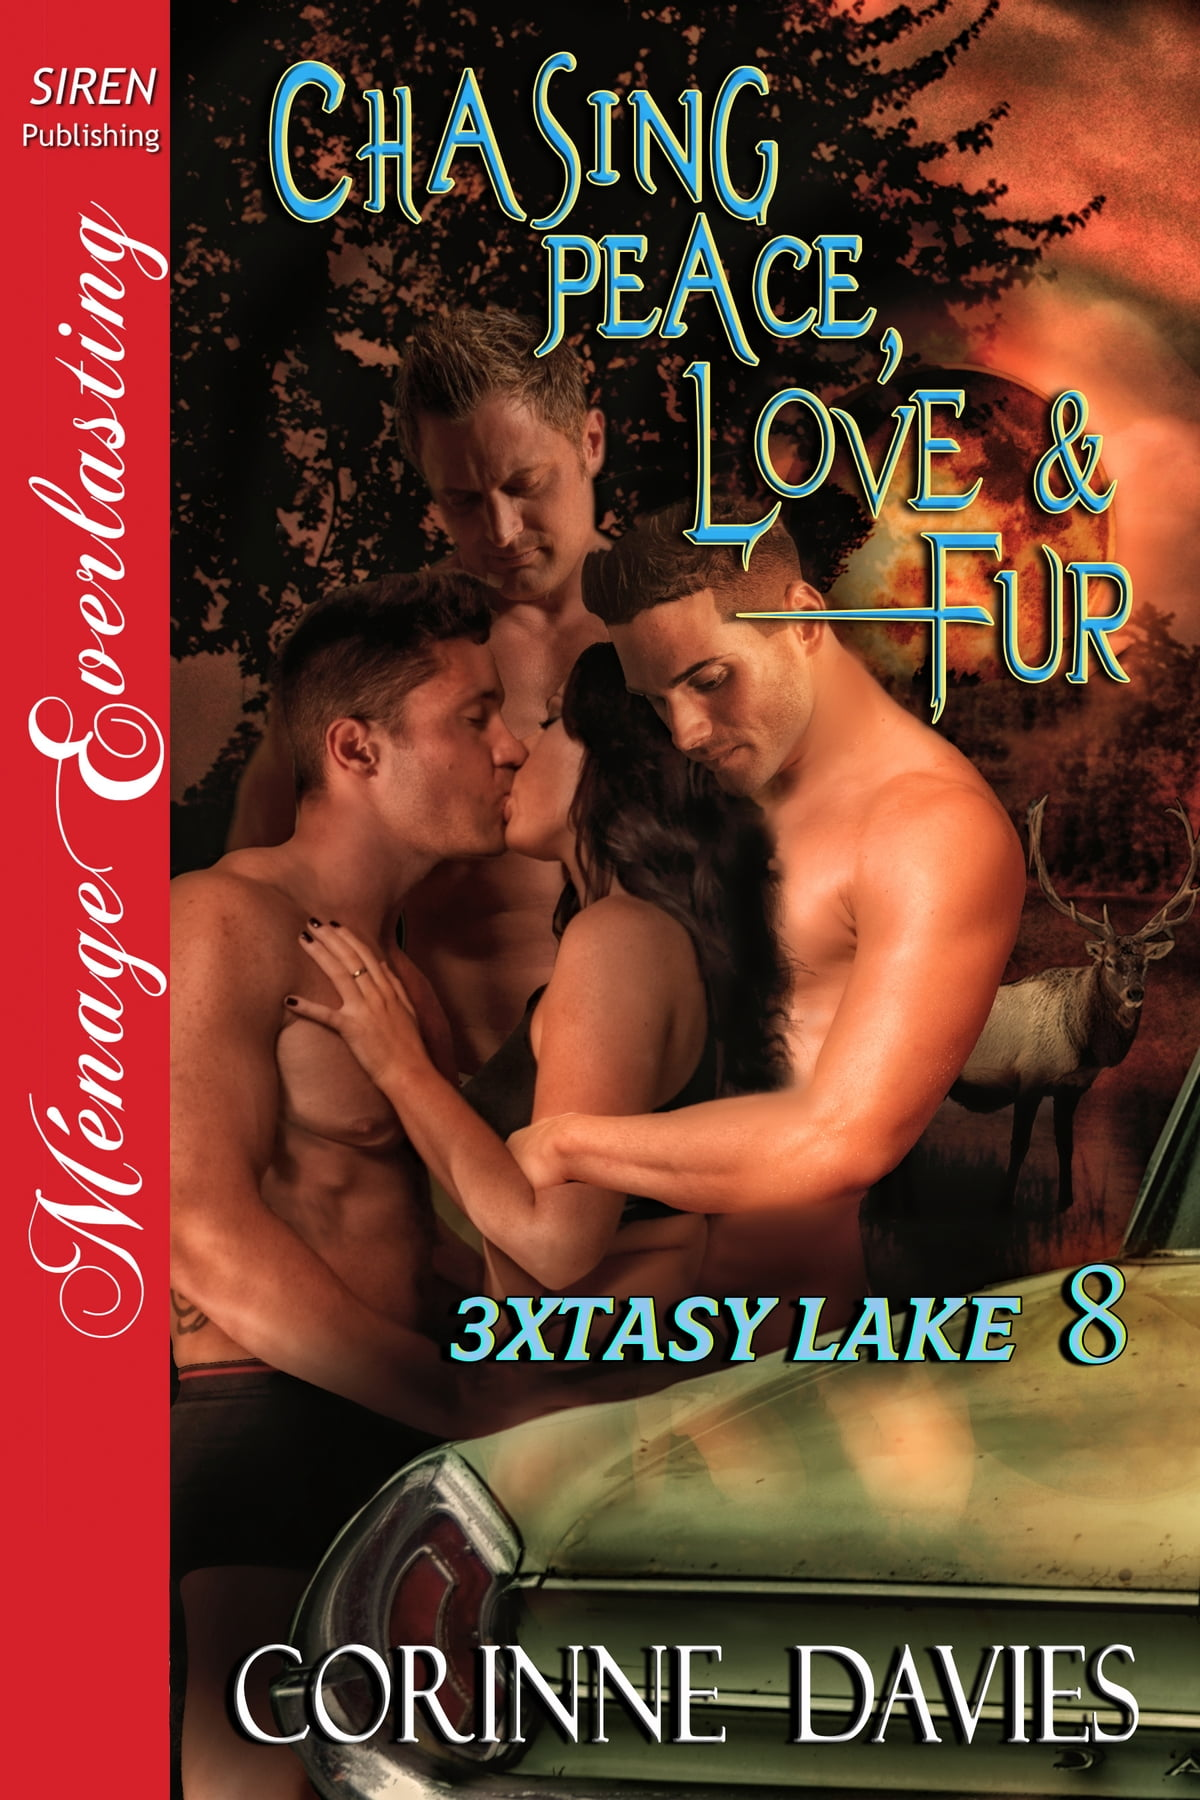 Obsessed with Fur [3xtasy Lake 4] (Siren Publishing Menage Everlasting)